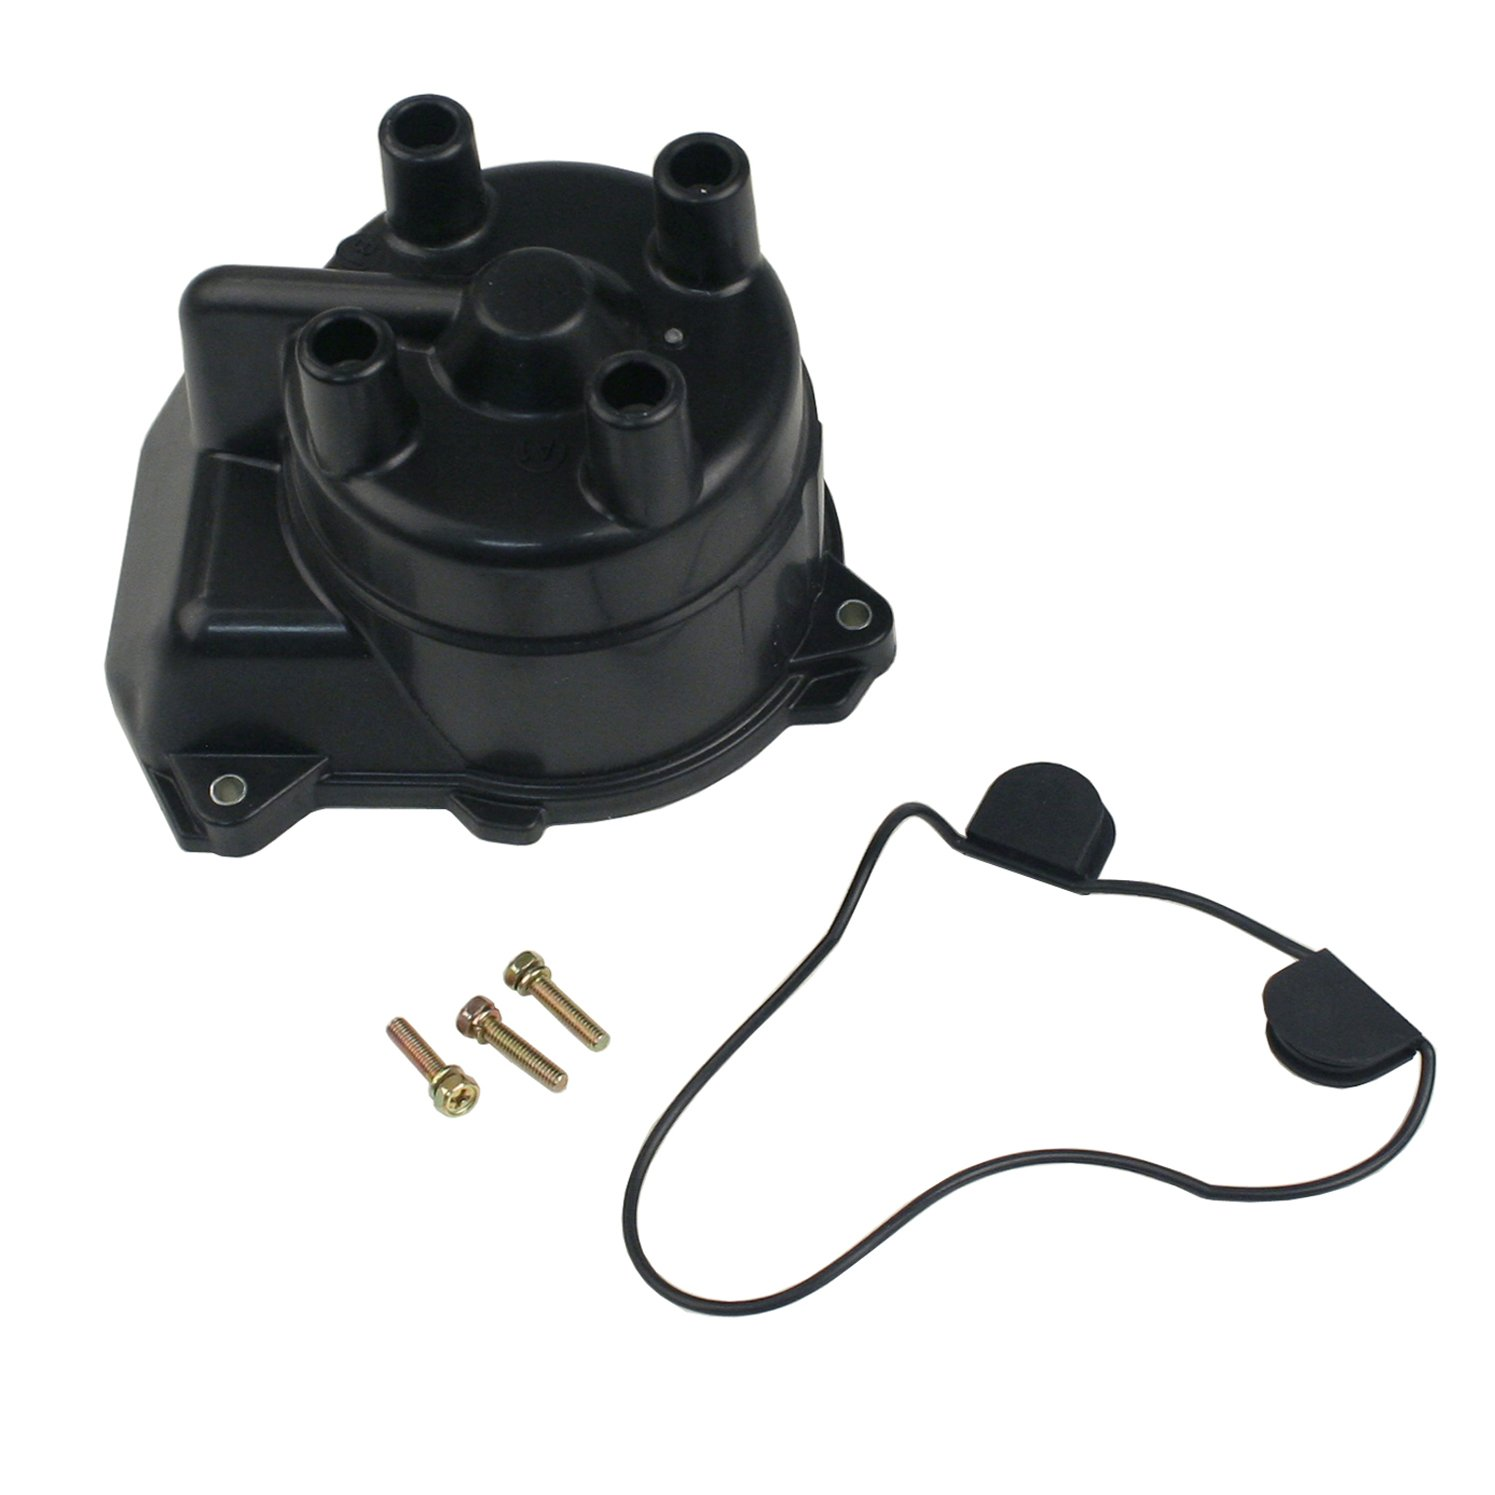 Beck Arnley 174-7022 Distributor Cap by Beck Arnley